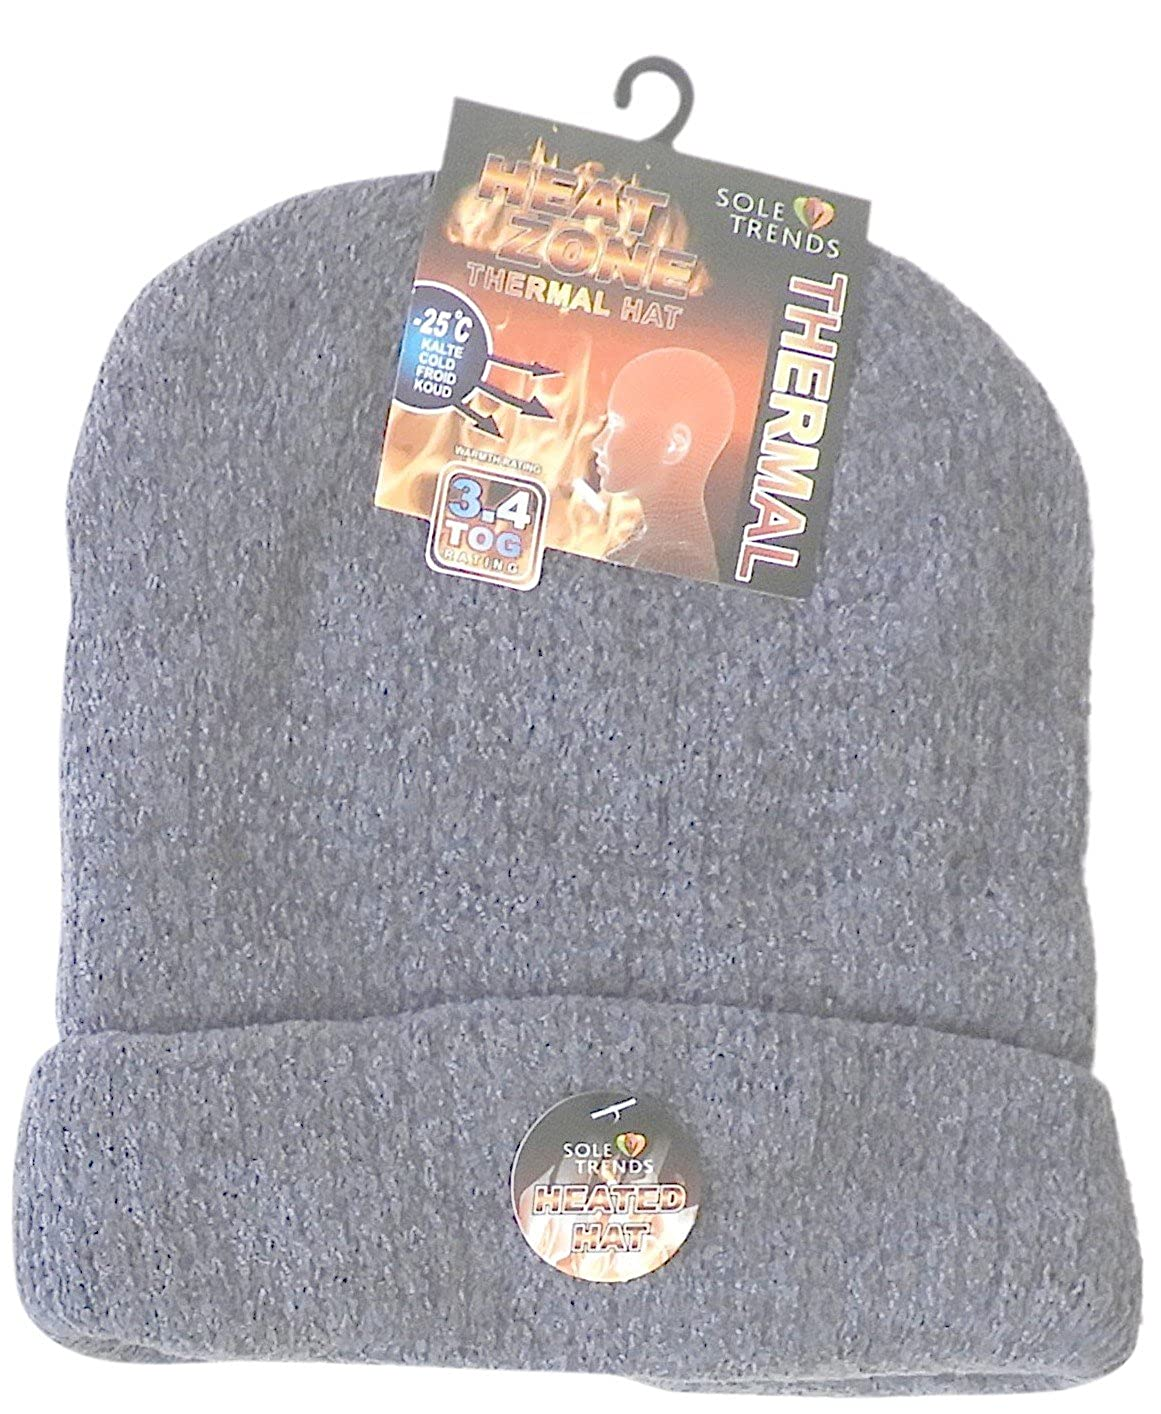 2dfad2b4f DINY Home & Style Unisex Heated Beanie Thermal Sherpa Insulated Lined  Interior to Keep Heat from Escaping Keeping You Warm